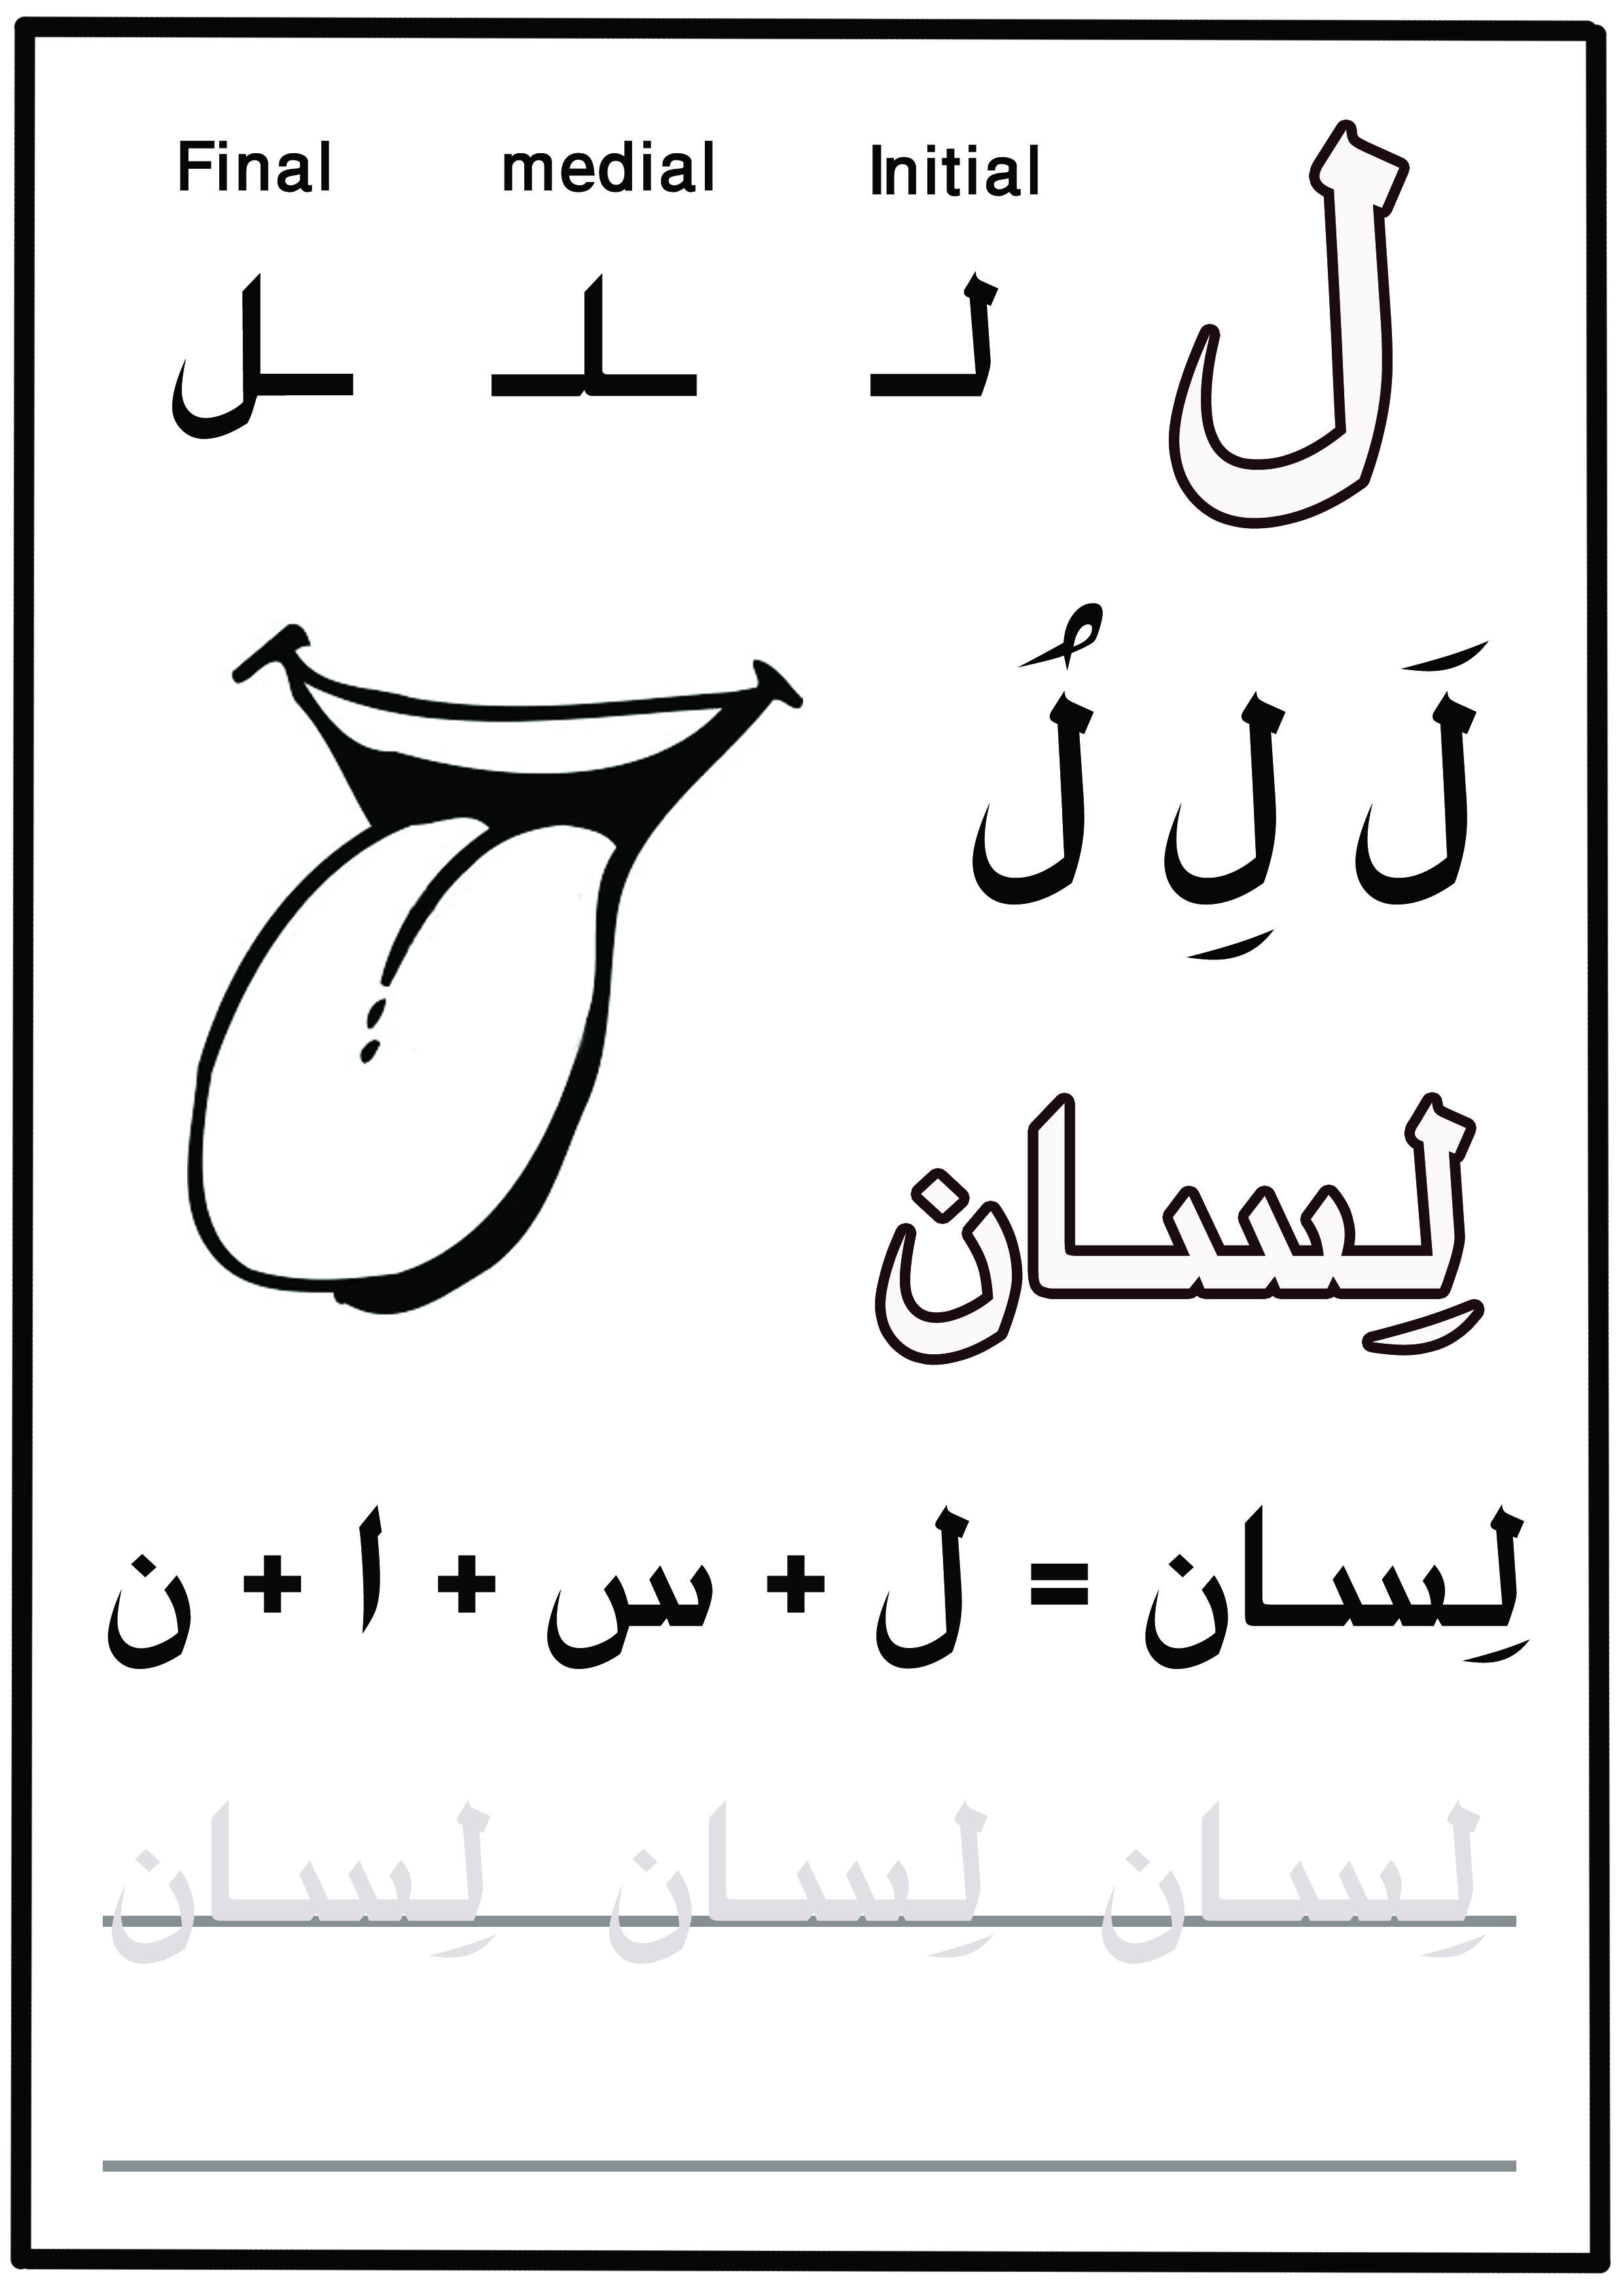 My First Letters And Words Book حرف اللام Practicelearnarabic For More Exercicesو Please Join Learn Arabic Online Arabic Alphabet For Kids Learning Arabic